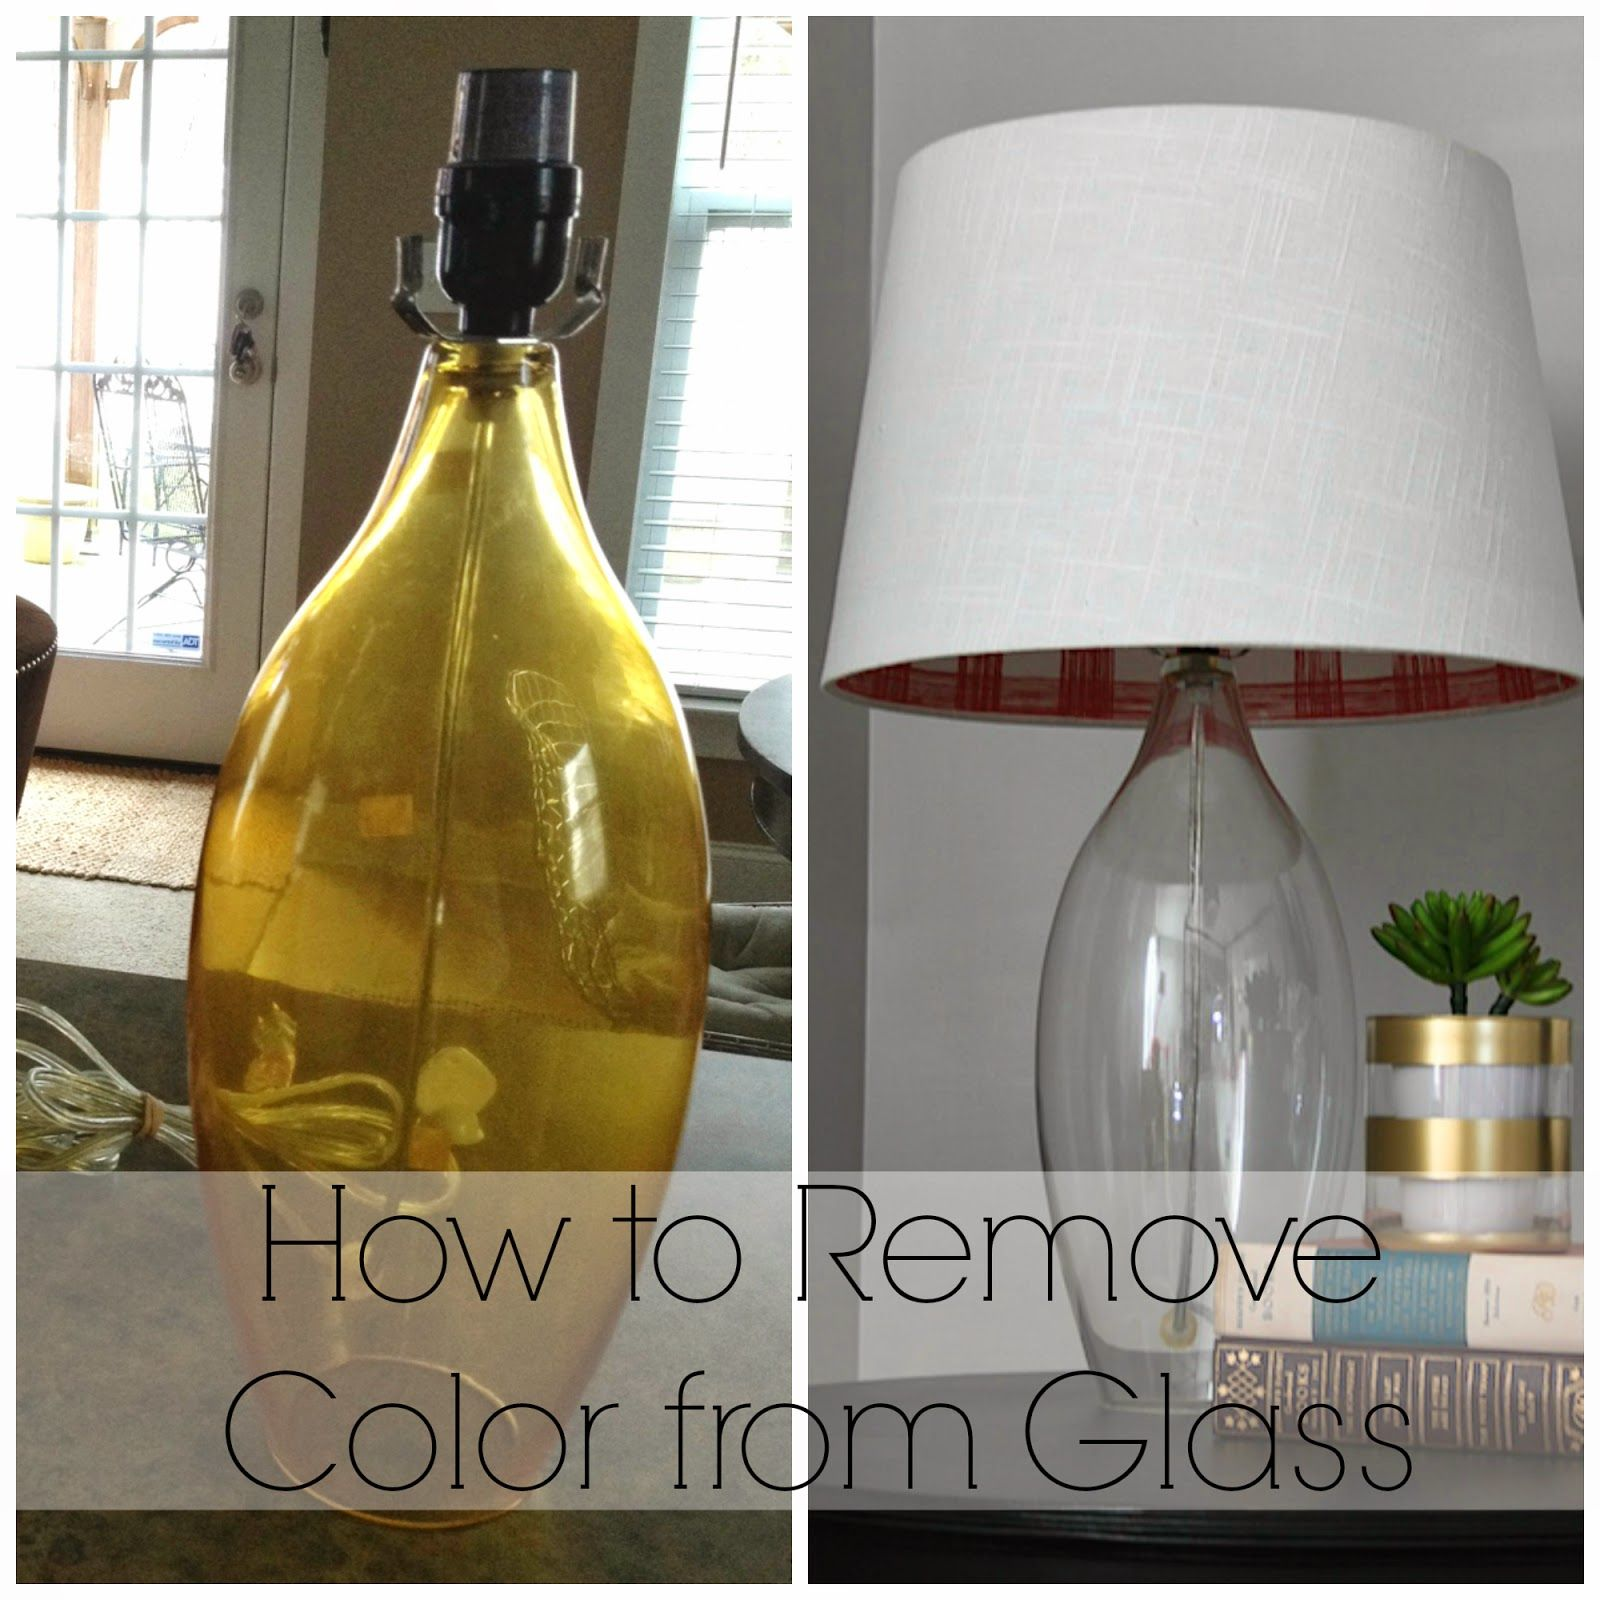 How To Remove Color From Glass For Glass That Has A Color Film